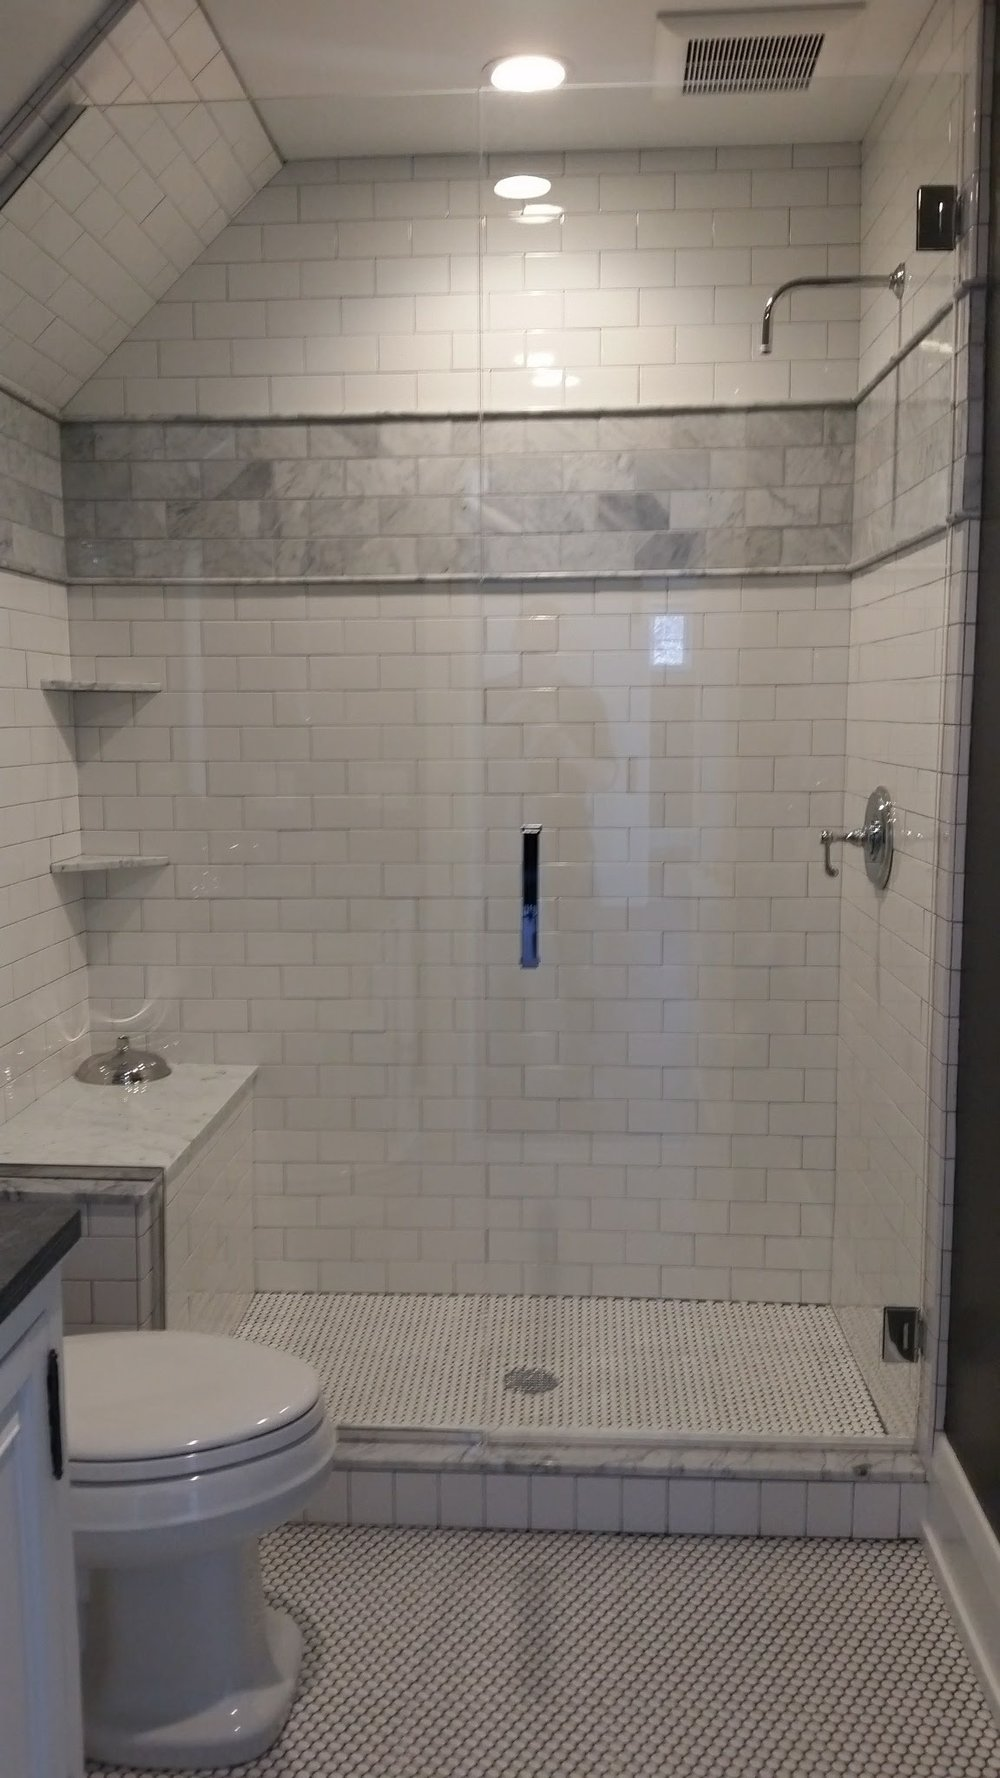 Full tile shower w/ bench and Euro glass door.